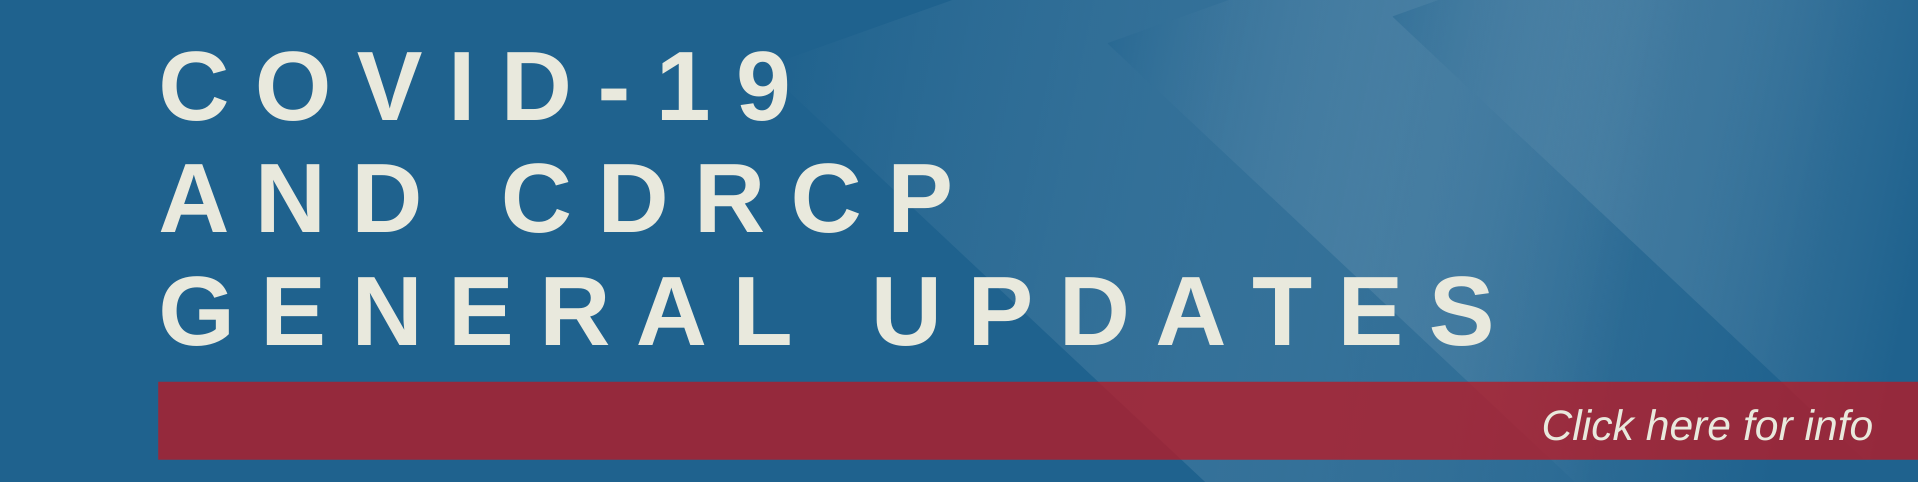 Covid-19 & CDRCP Updates